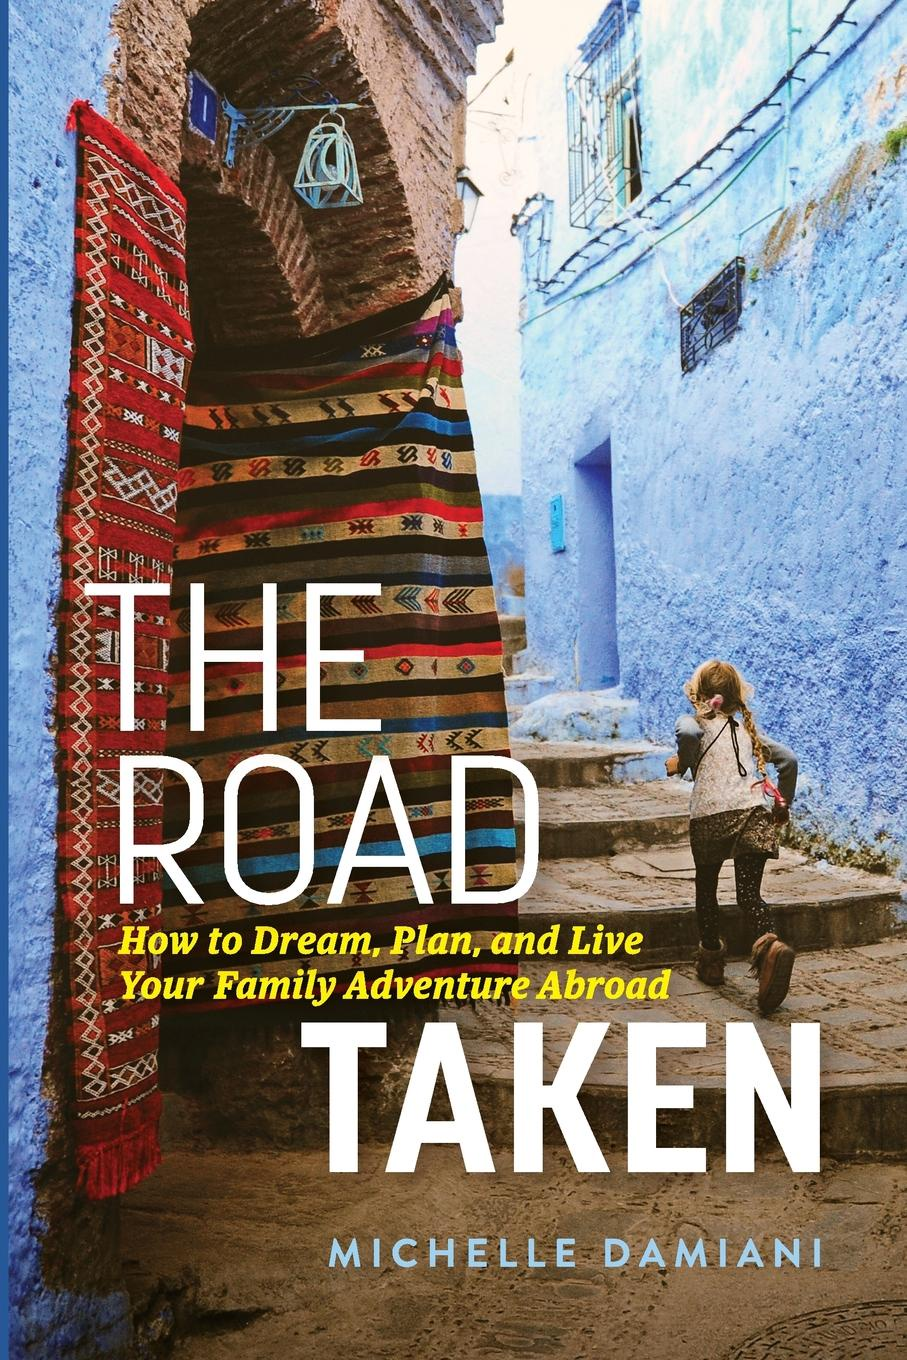 Michelle Damiani The Road Taken. How to Dream, Plan, and Live Your Family Adventure Abroad